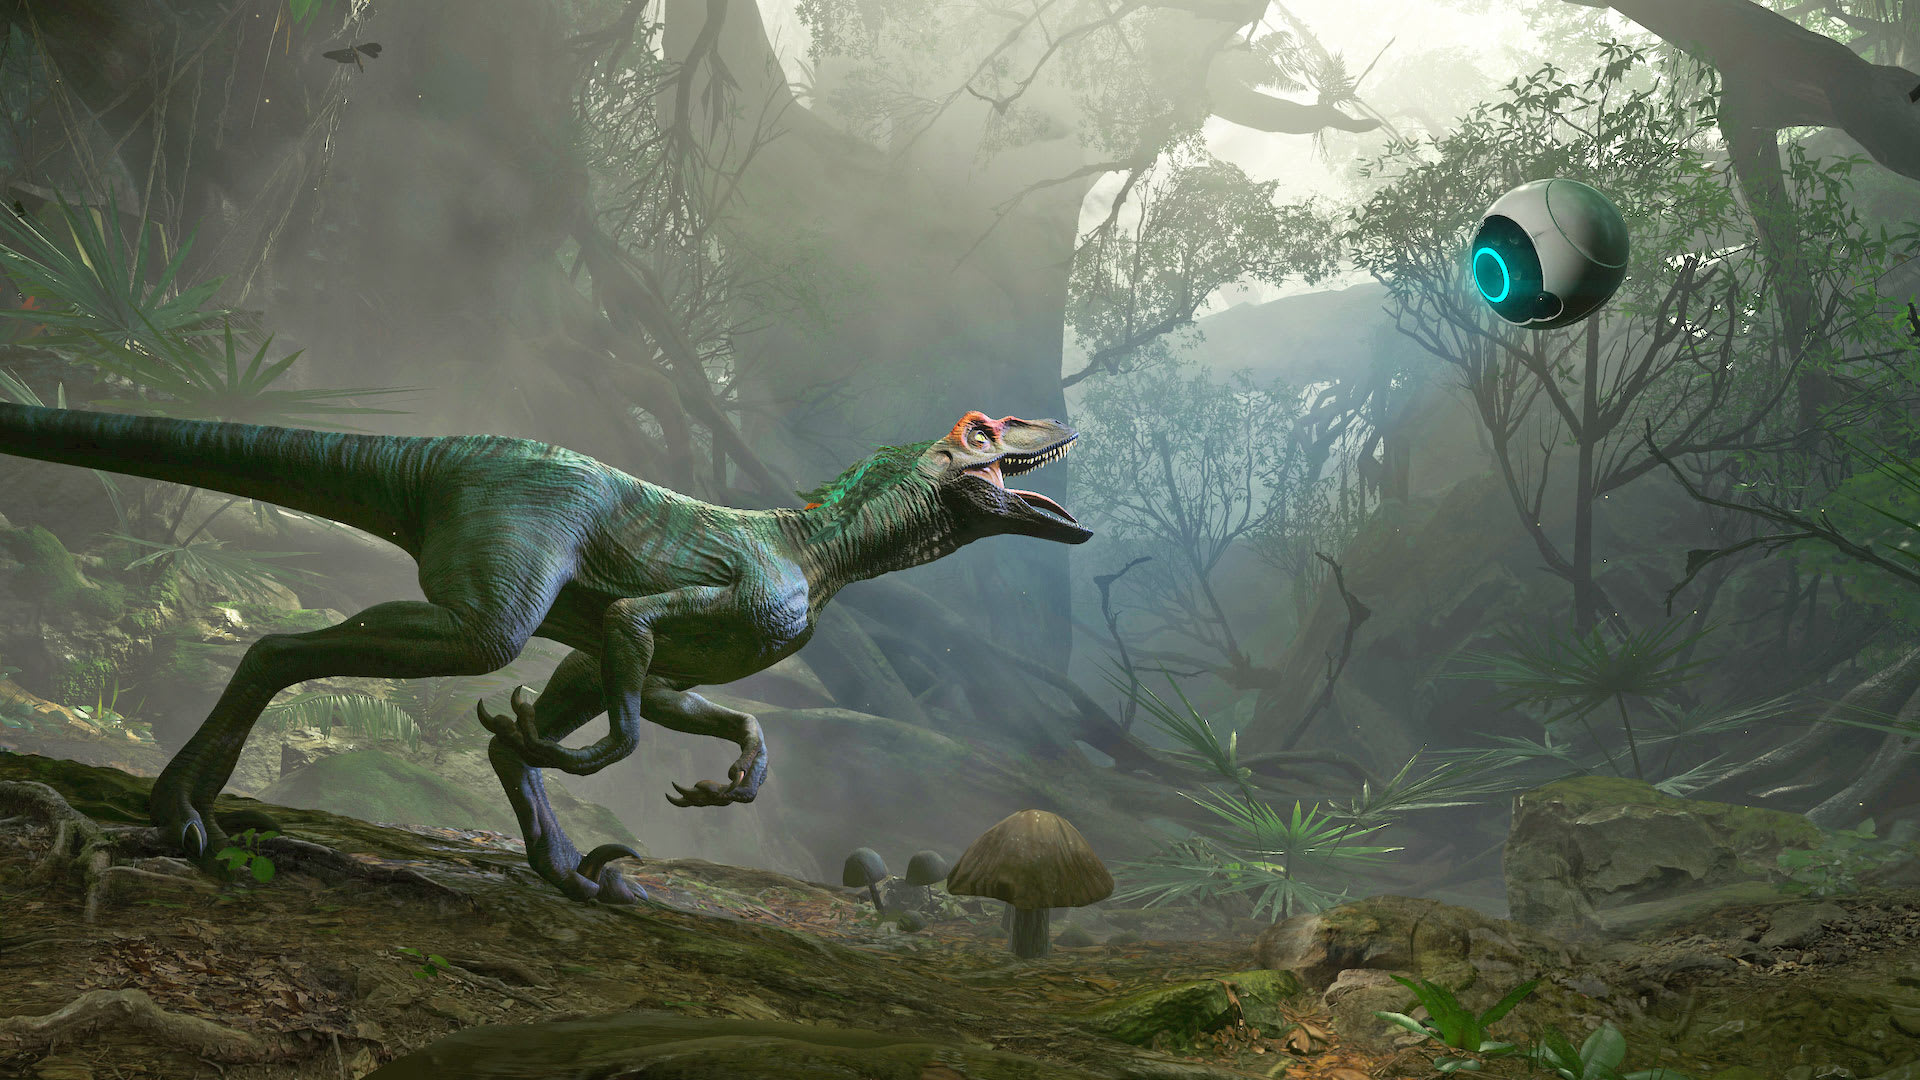 7244bc47606a Virtual reality is the best (and safest) way to get up close and personal  with dinosaurs. And next month folks with Oculus Rift headsets can do just  that ...